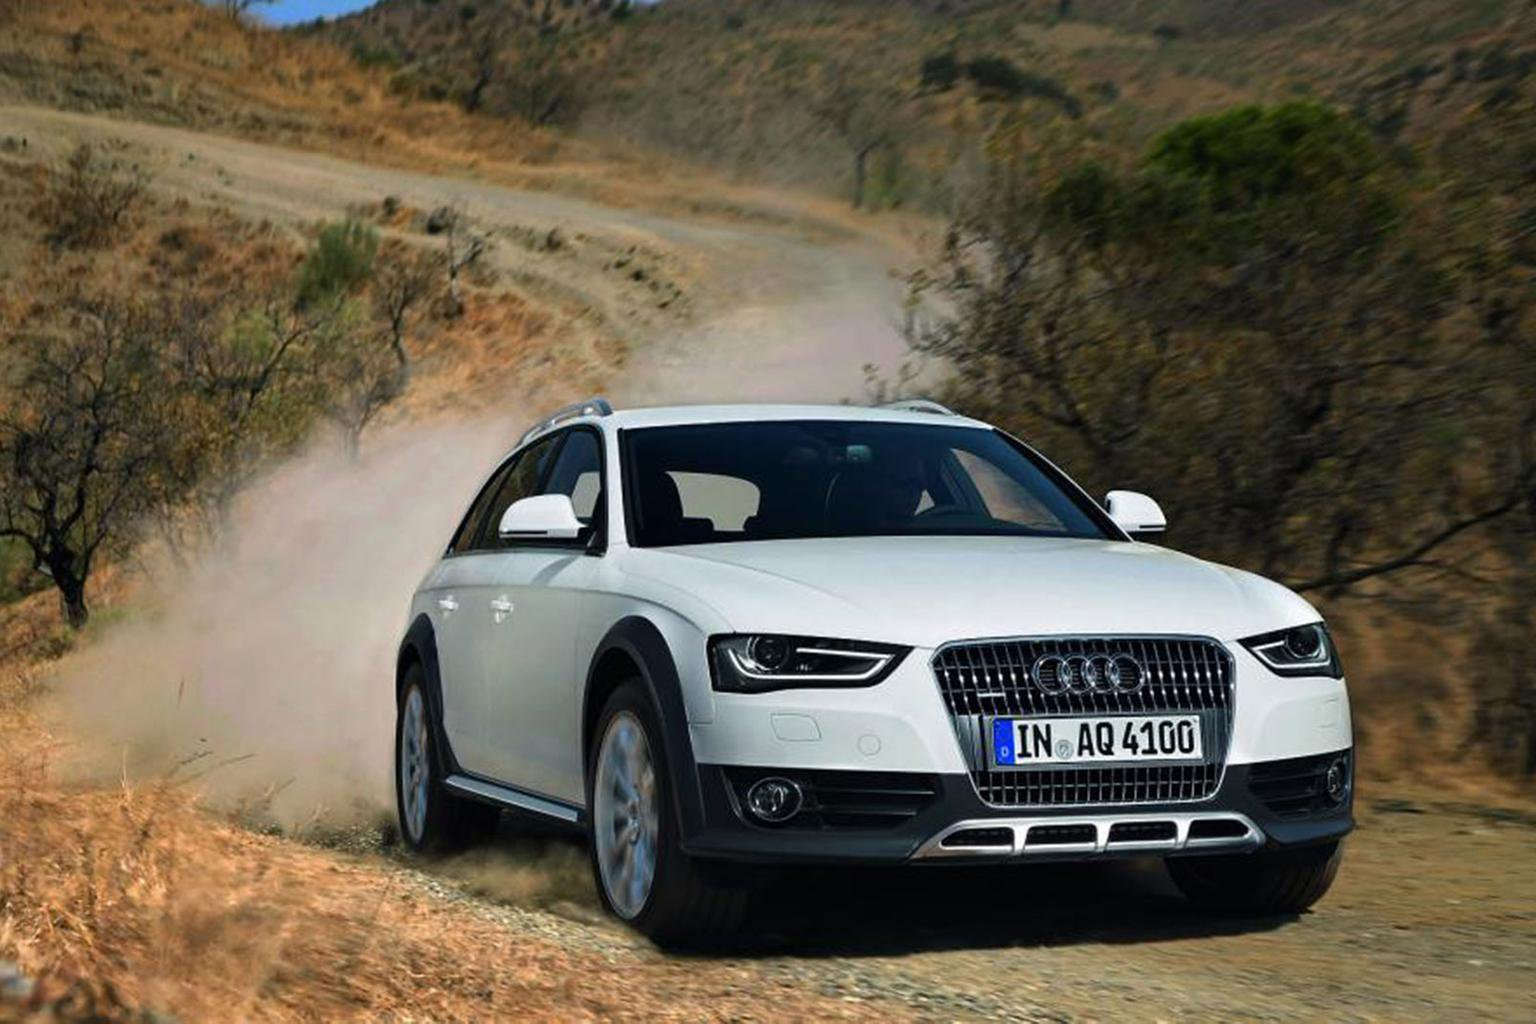 Deal of the Day: Audi A4 Allroad